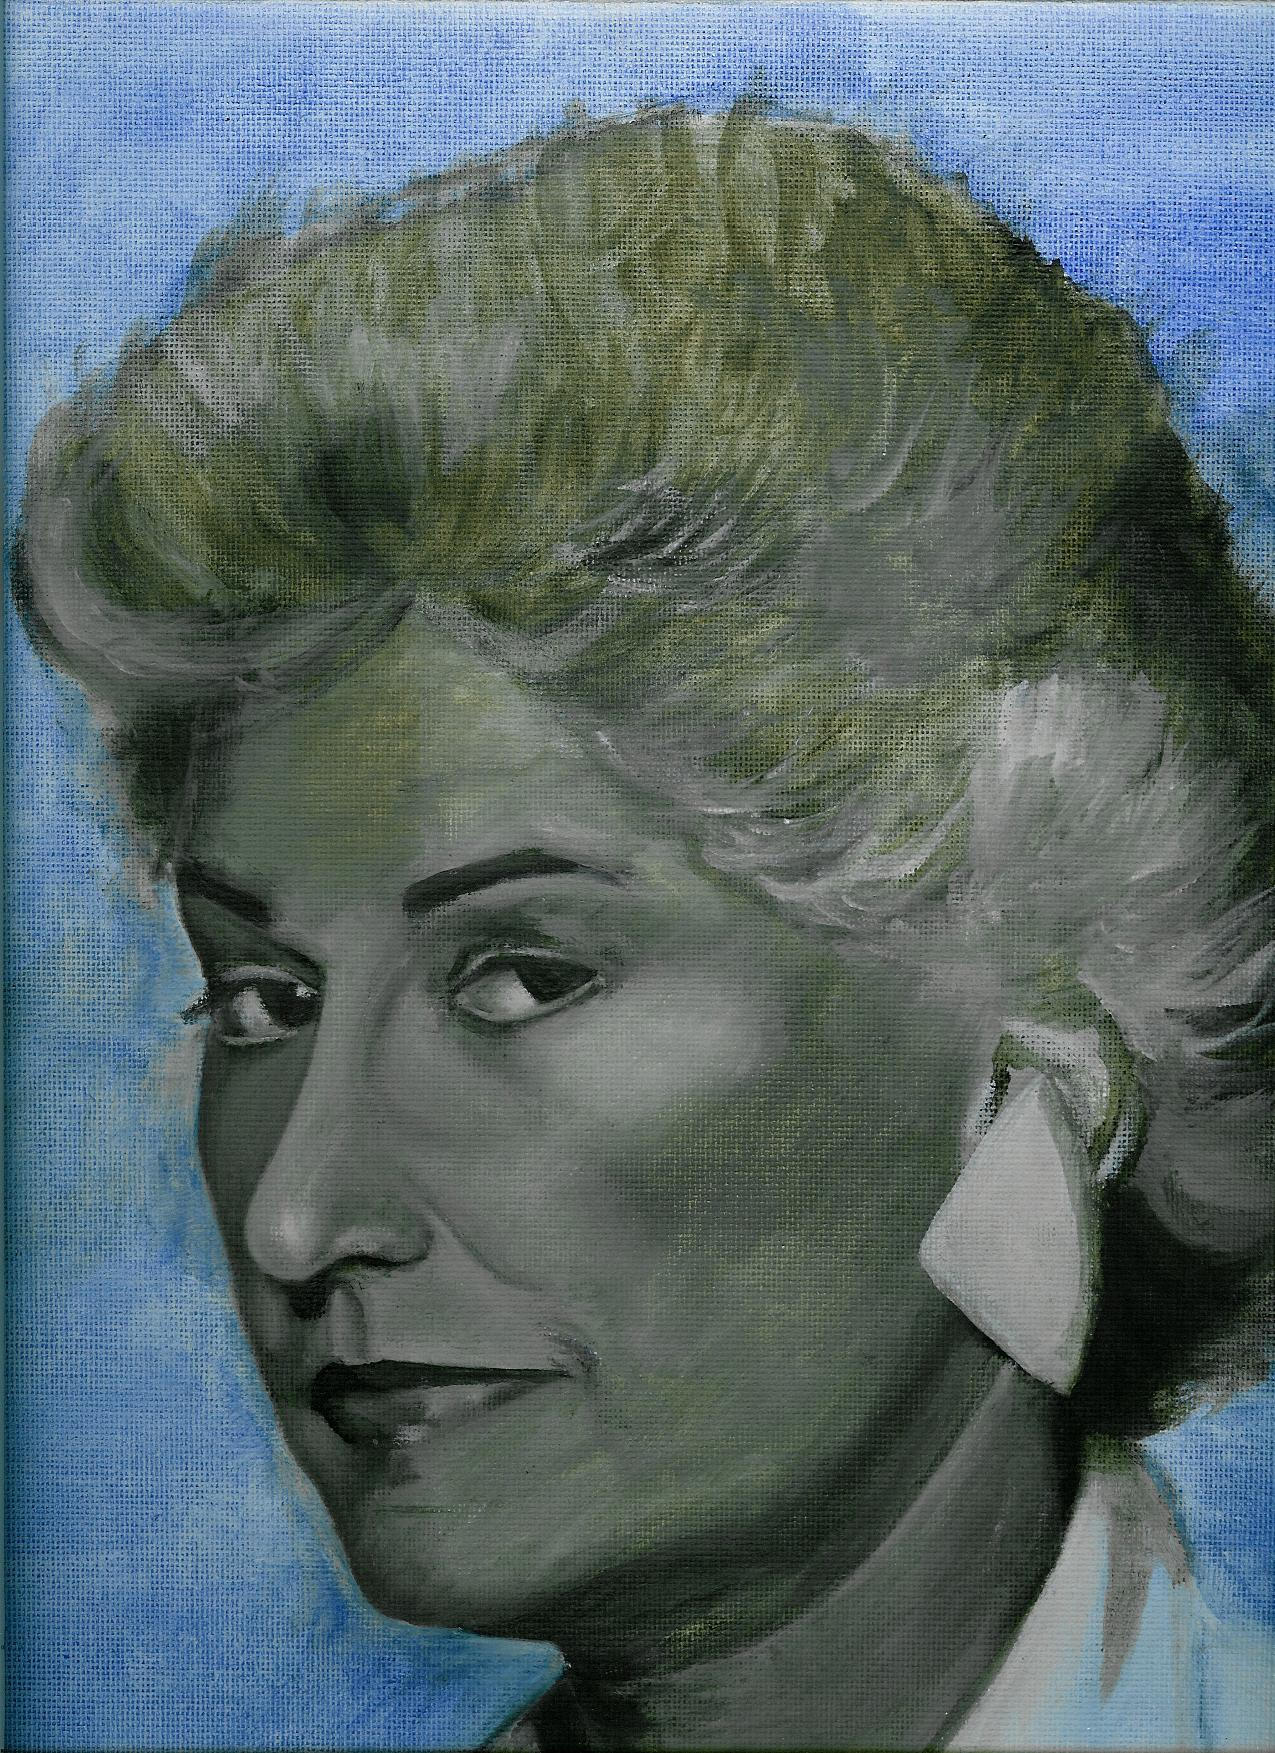 Nude Bea Arthur Painting By John Currin Sells For Million At Filmvz